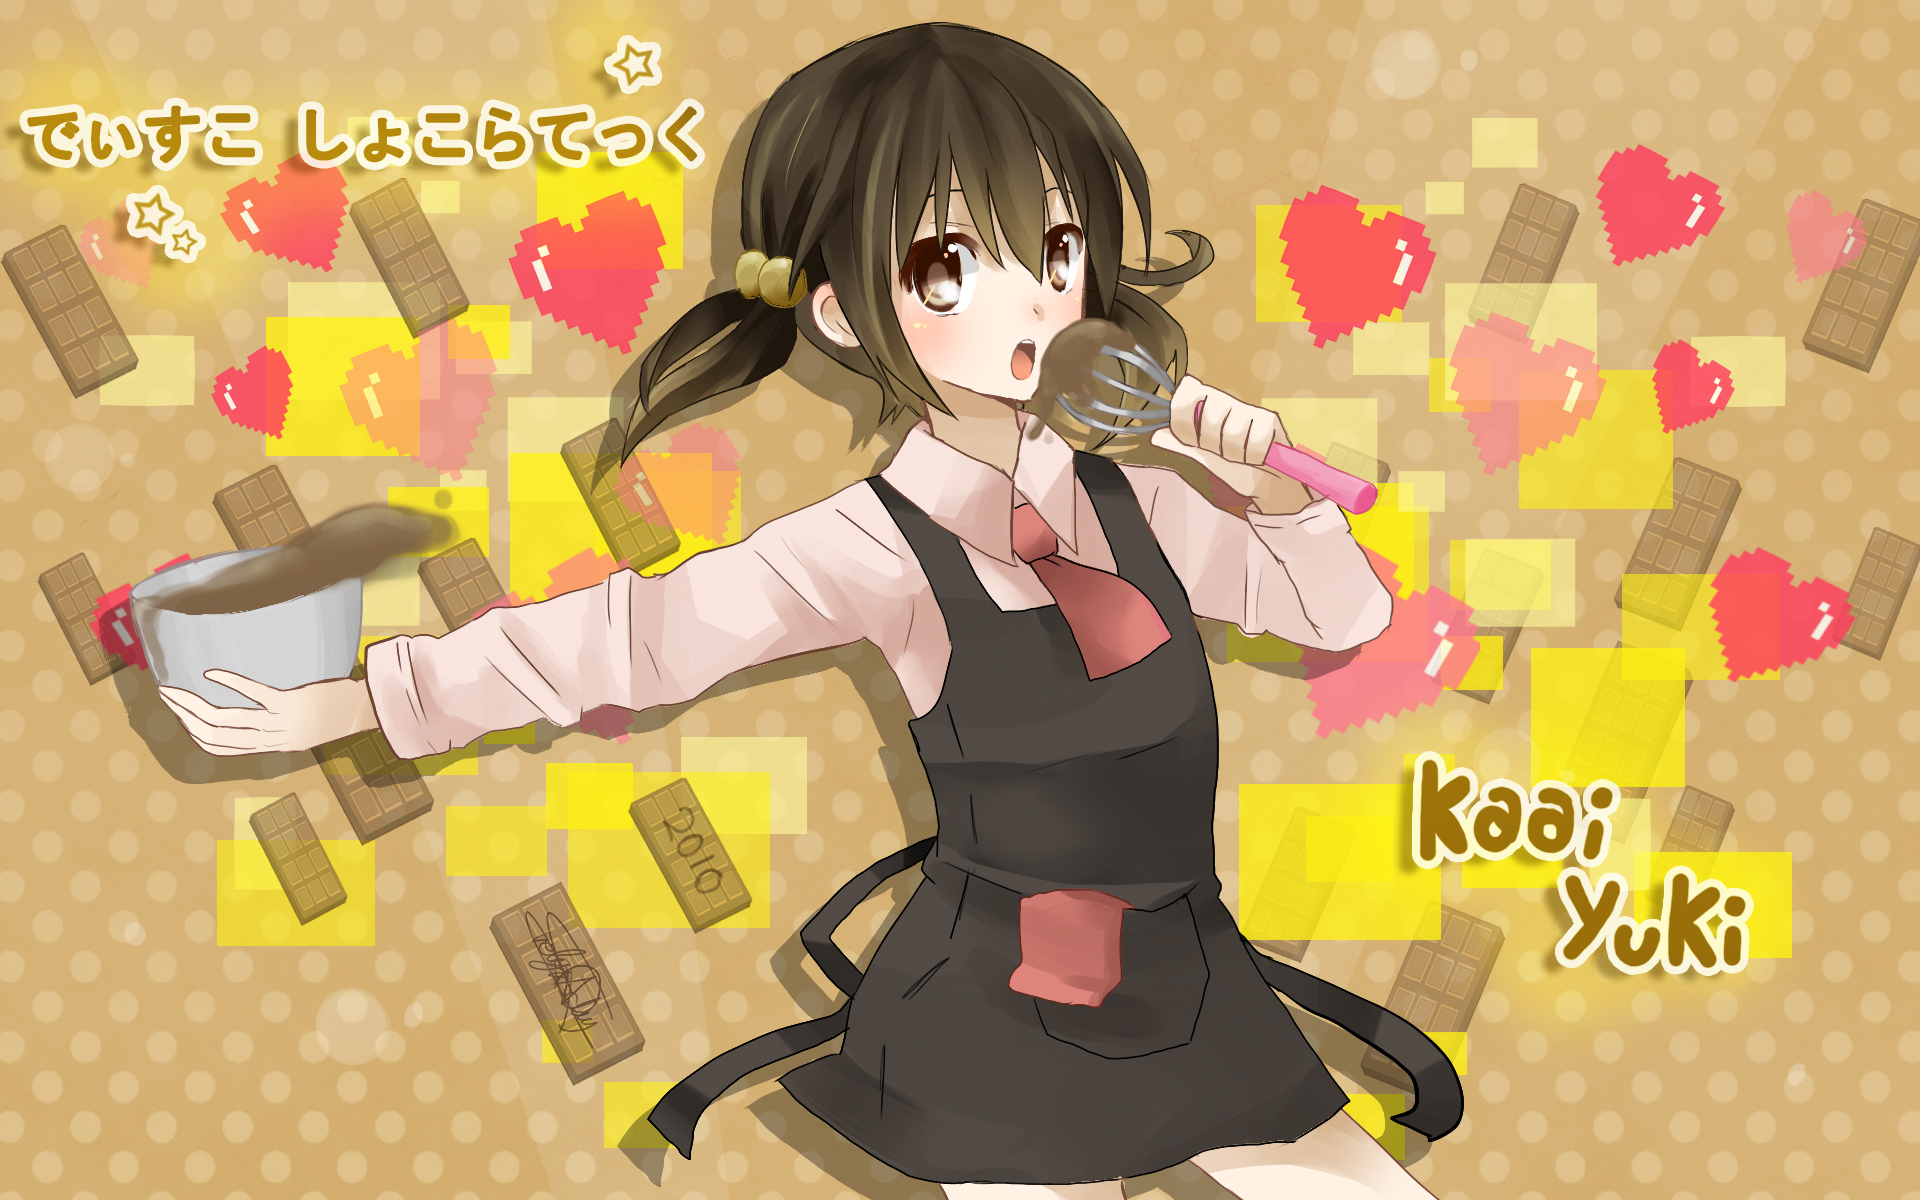 Yuki Cosplay Costume (Disco Chocolat) from Vocaloid